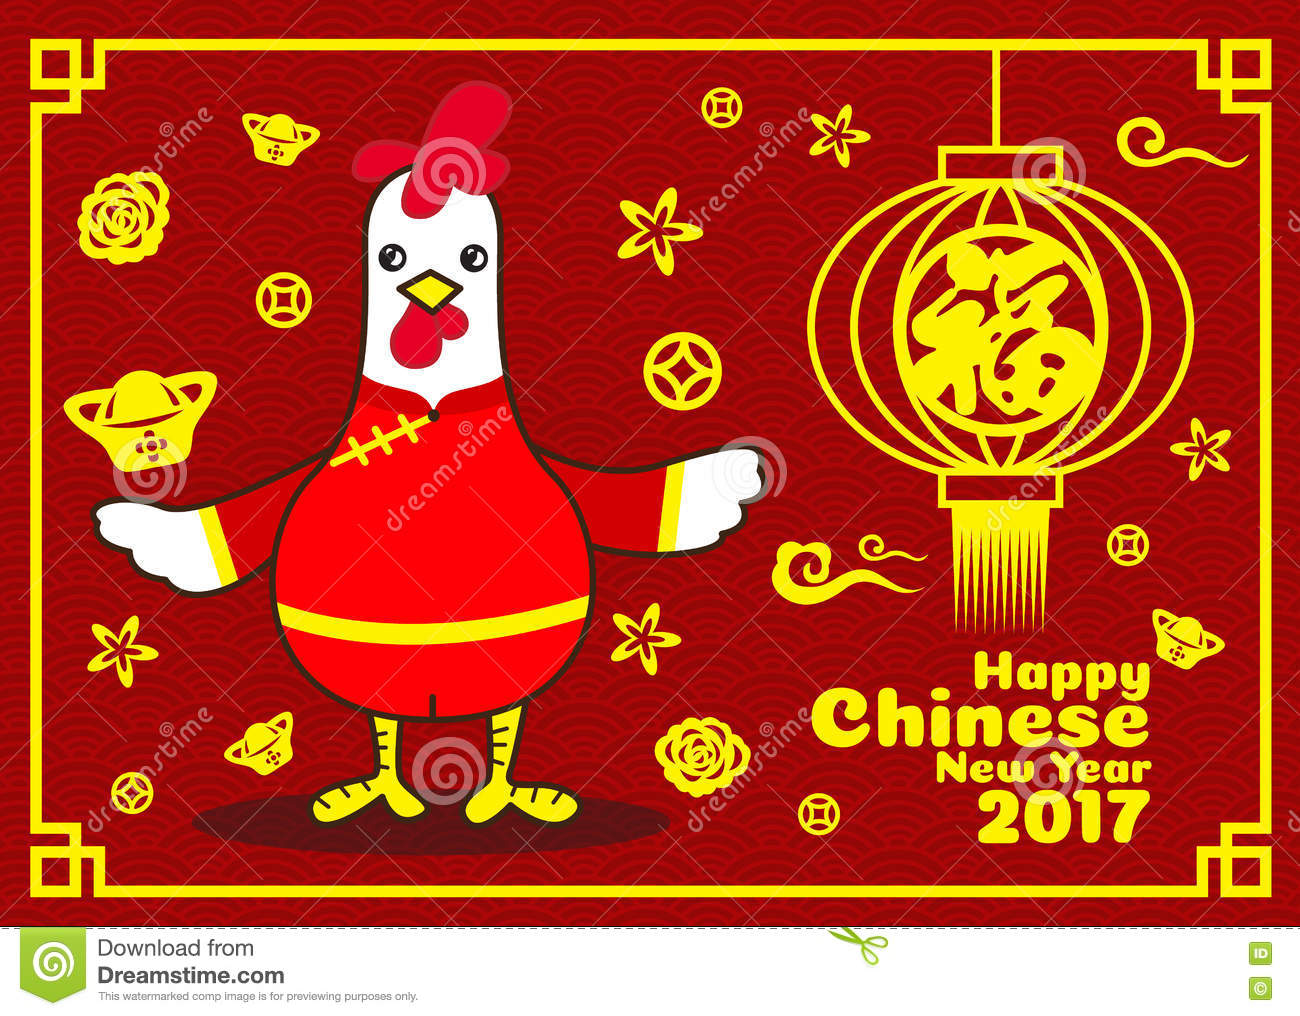 happy chinese new year 2017 card is chicken cartoon in red cheongsam dress and lanterns